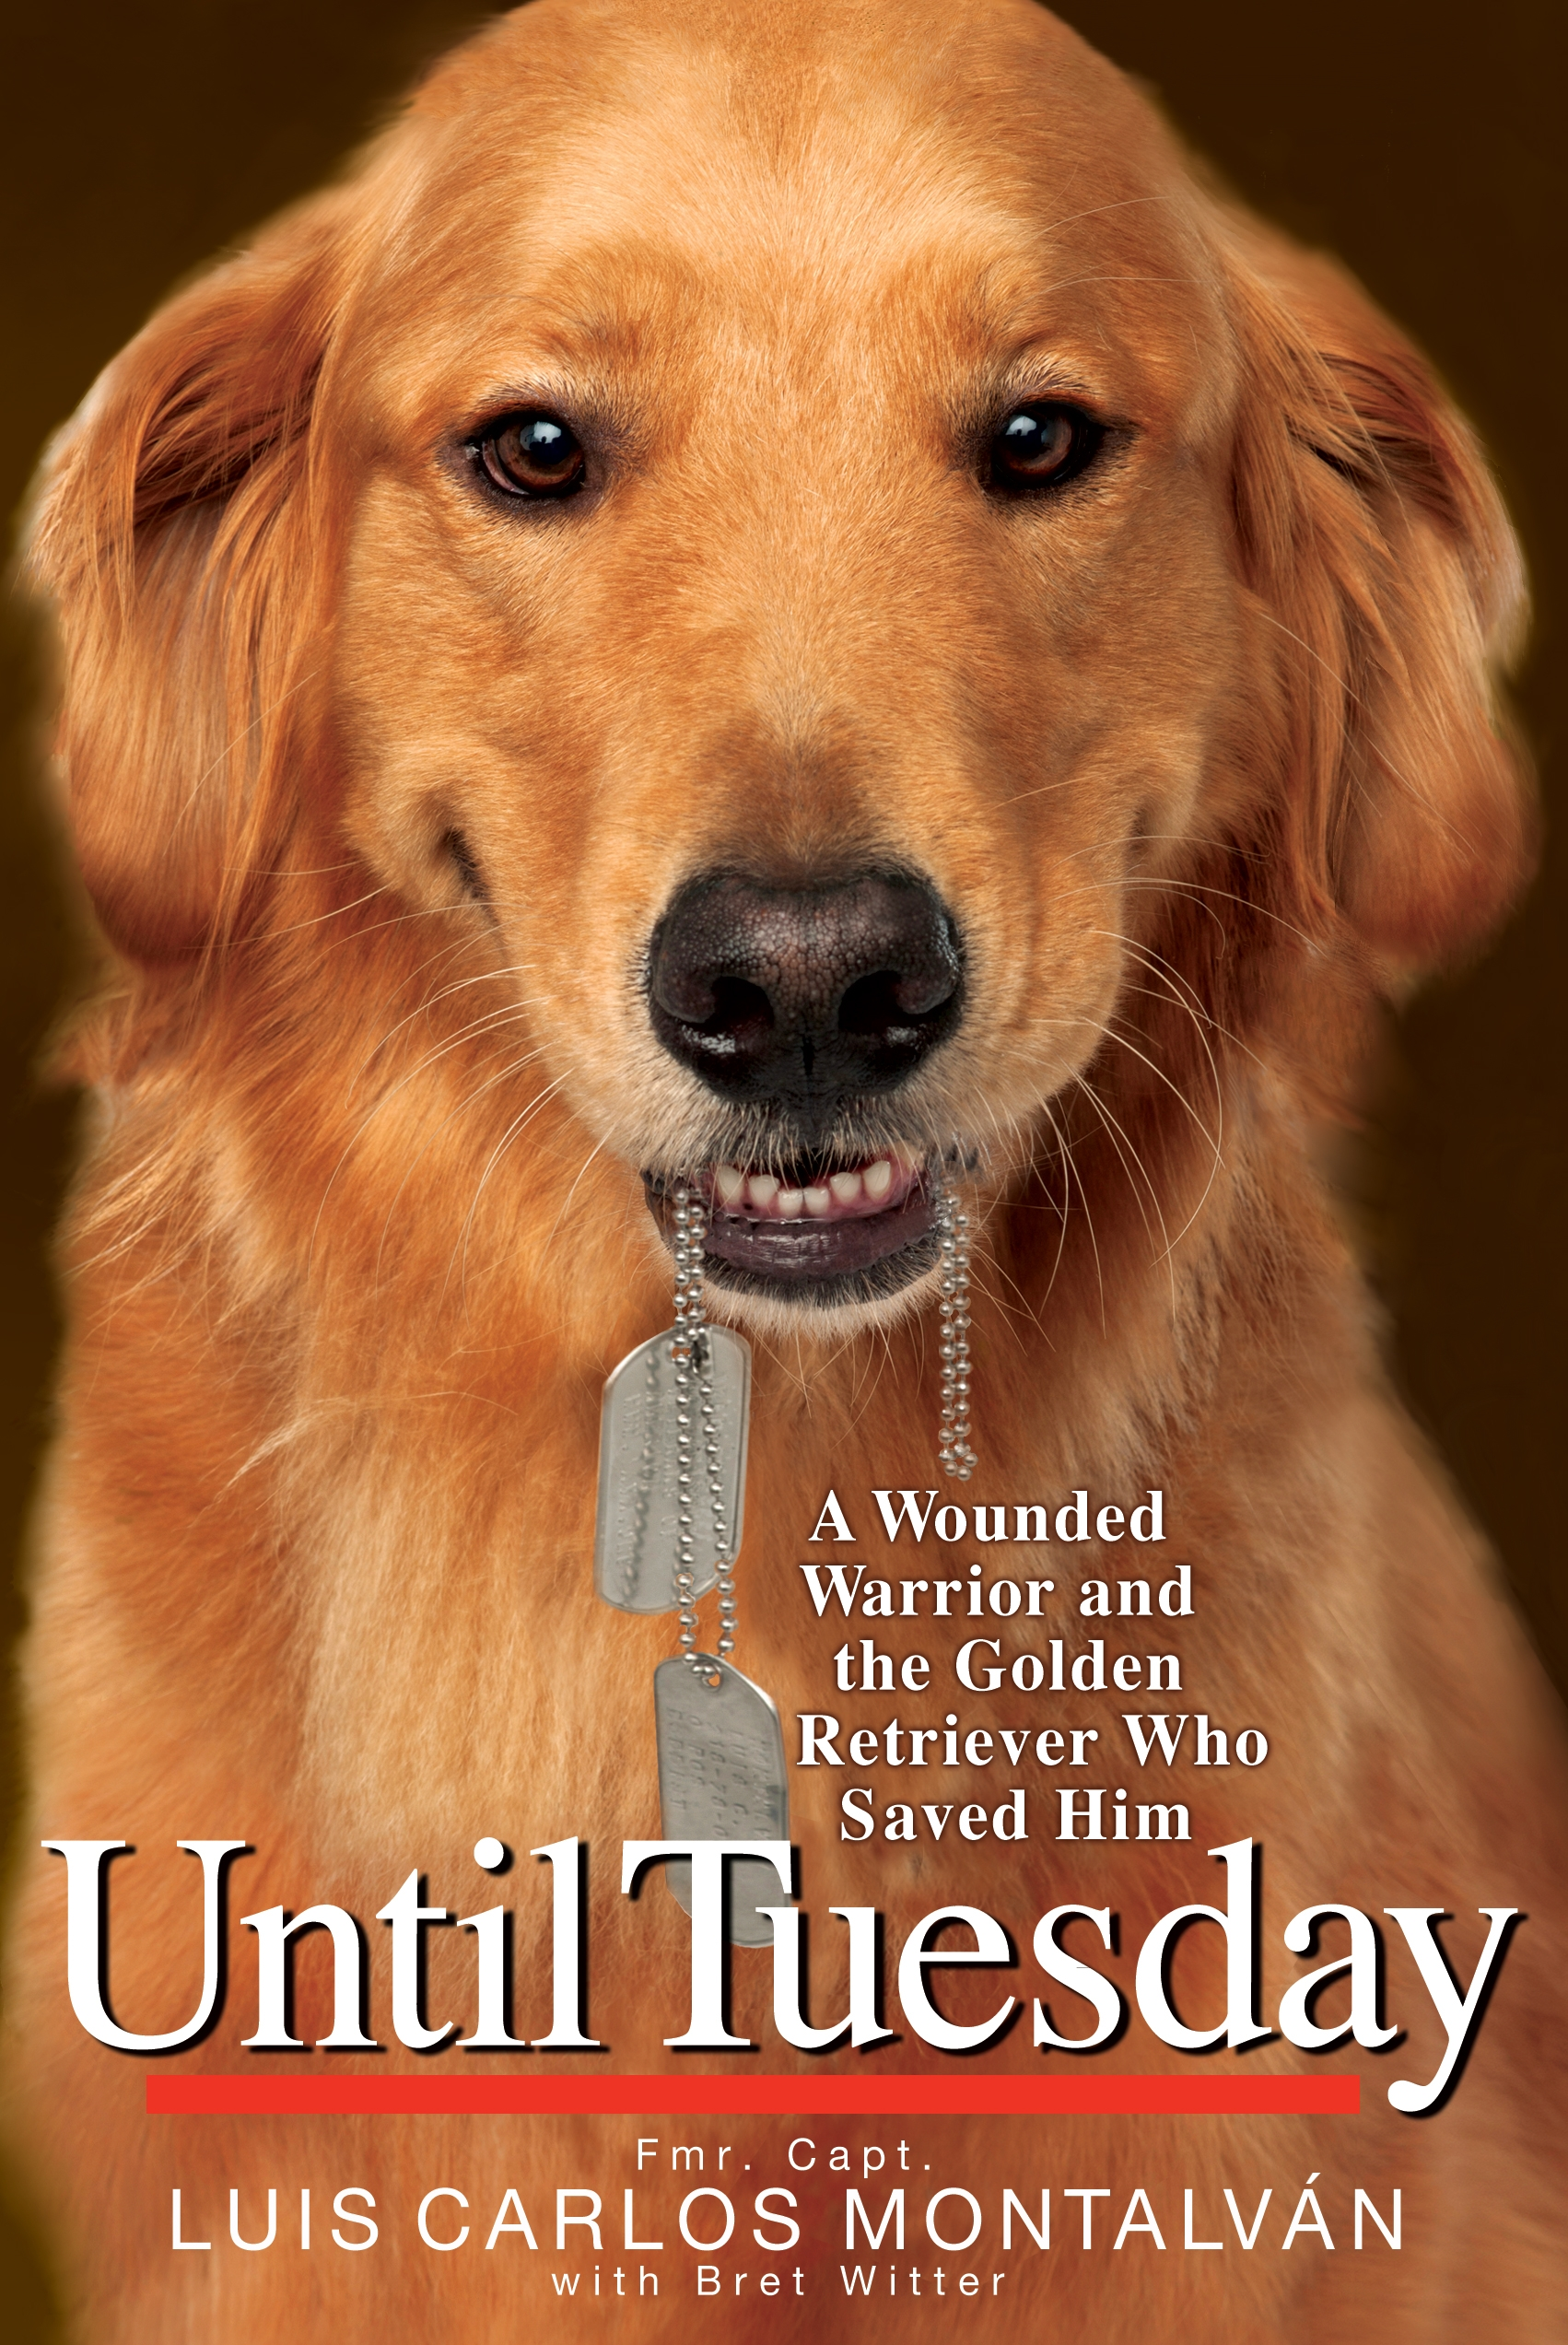 Soldier dog ebook best deal gallery free ebooks and more newport beach local news under cover soldier and canine profiled in those of you who read fandeluxe Choice Image